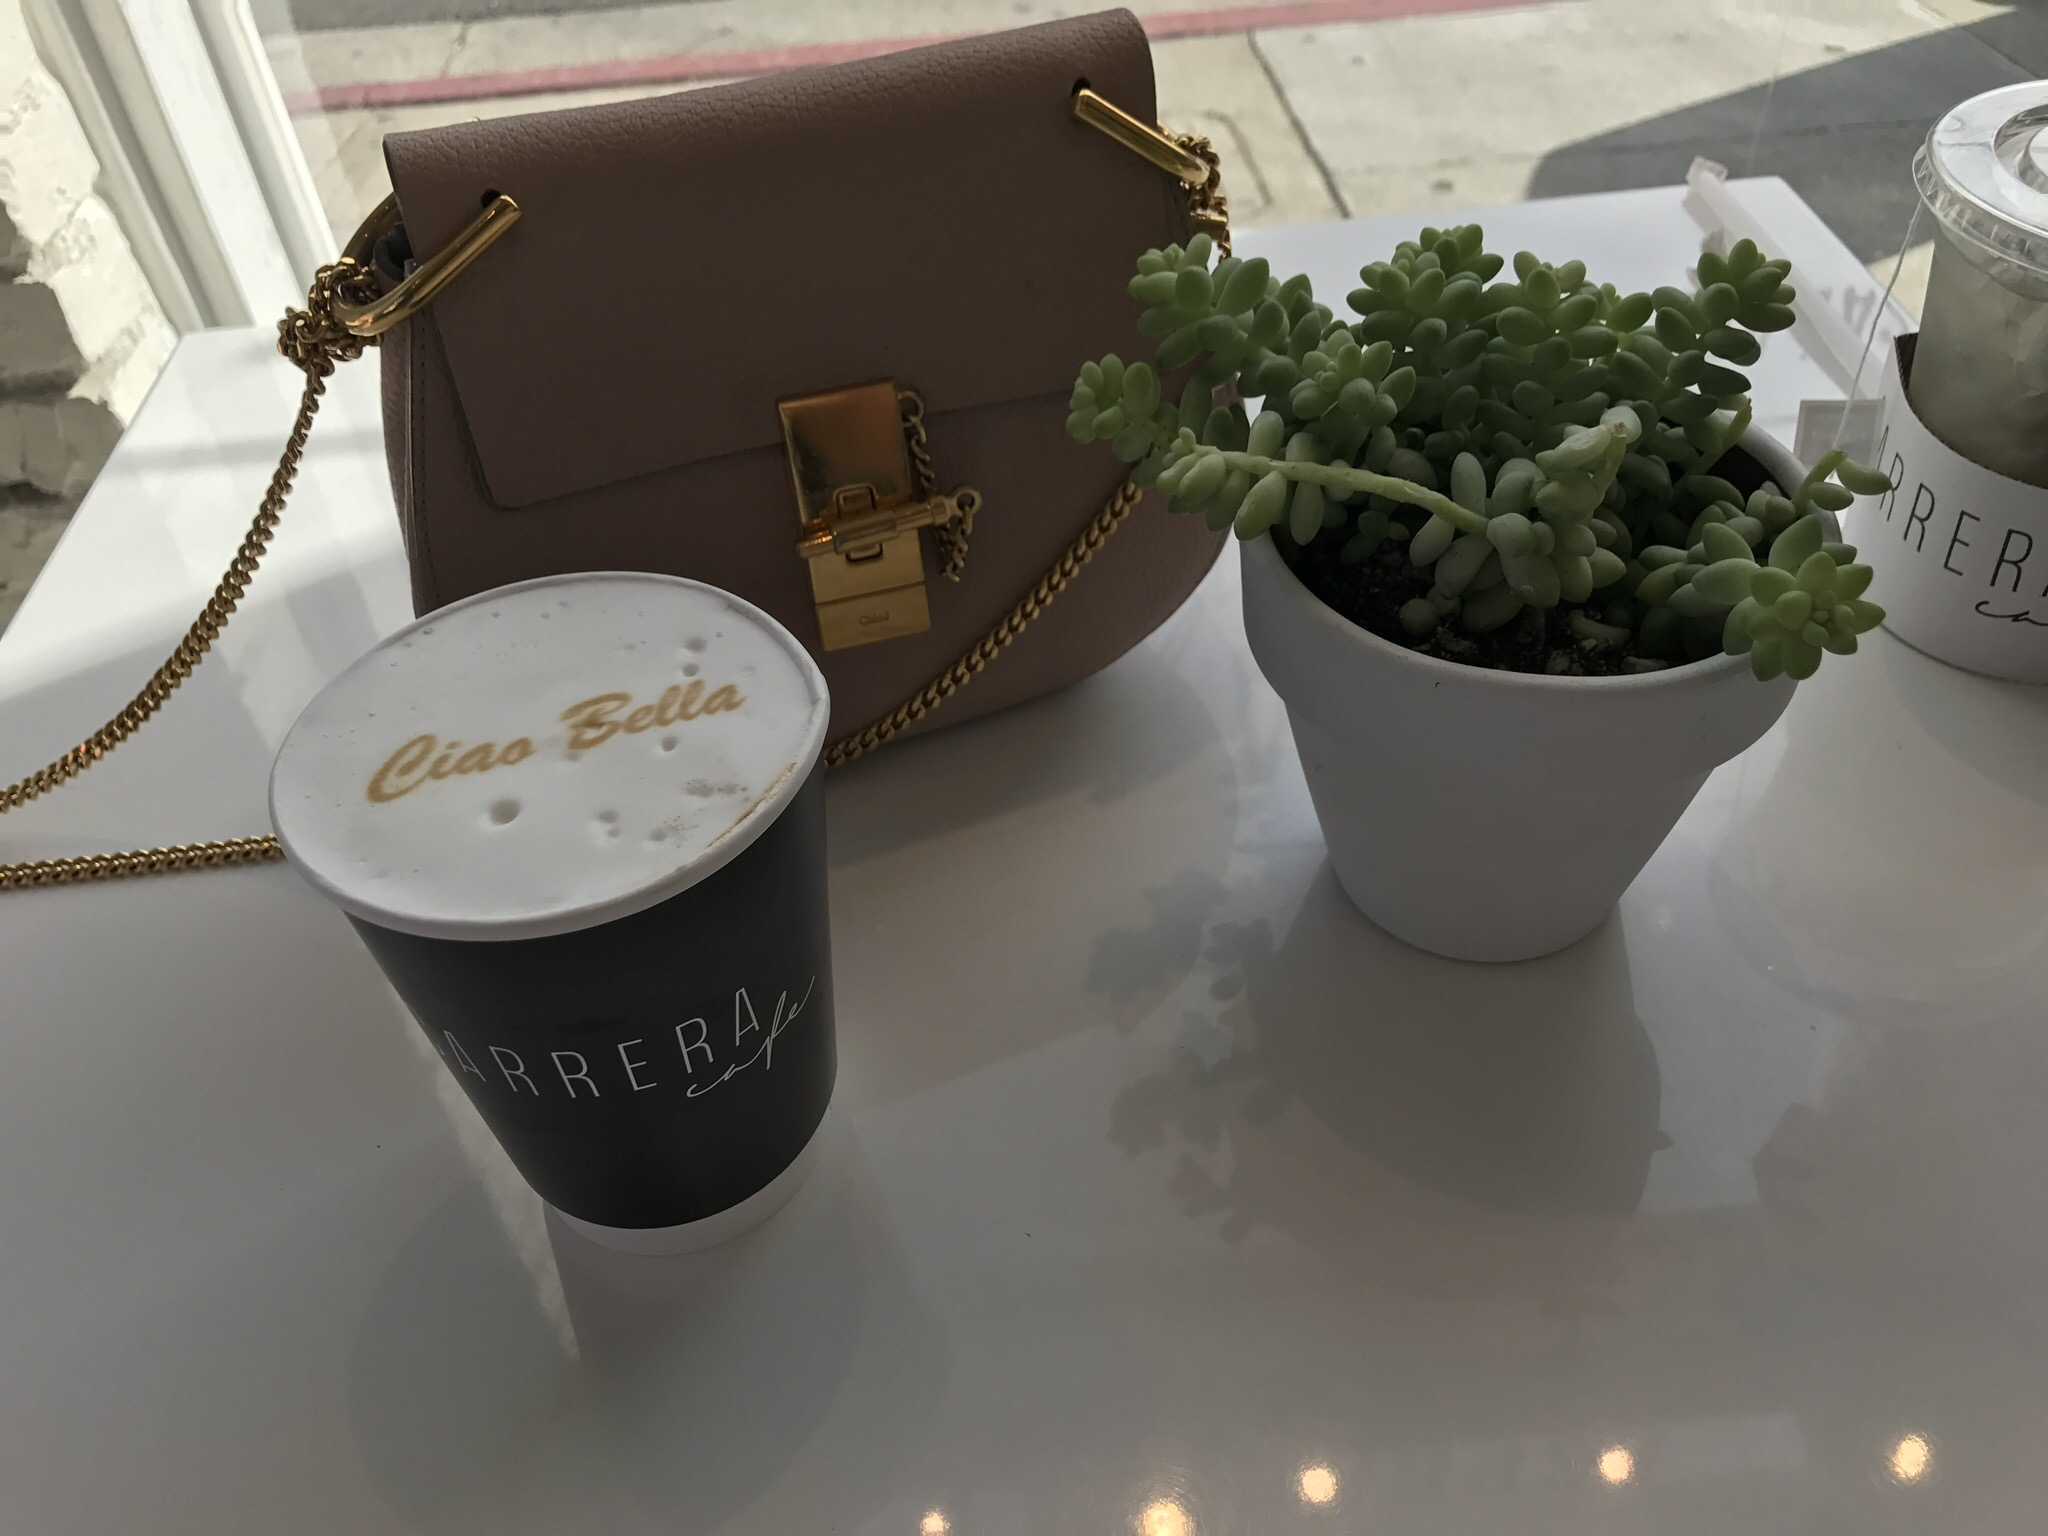 The Best Latte Art Cafe in LA by Liz in Los Angeles, Los Angeles Lifestyle Blogger